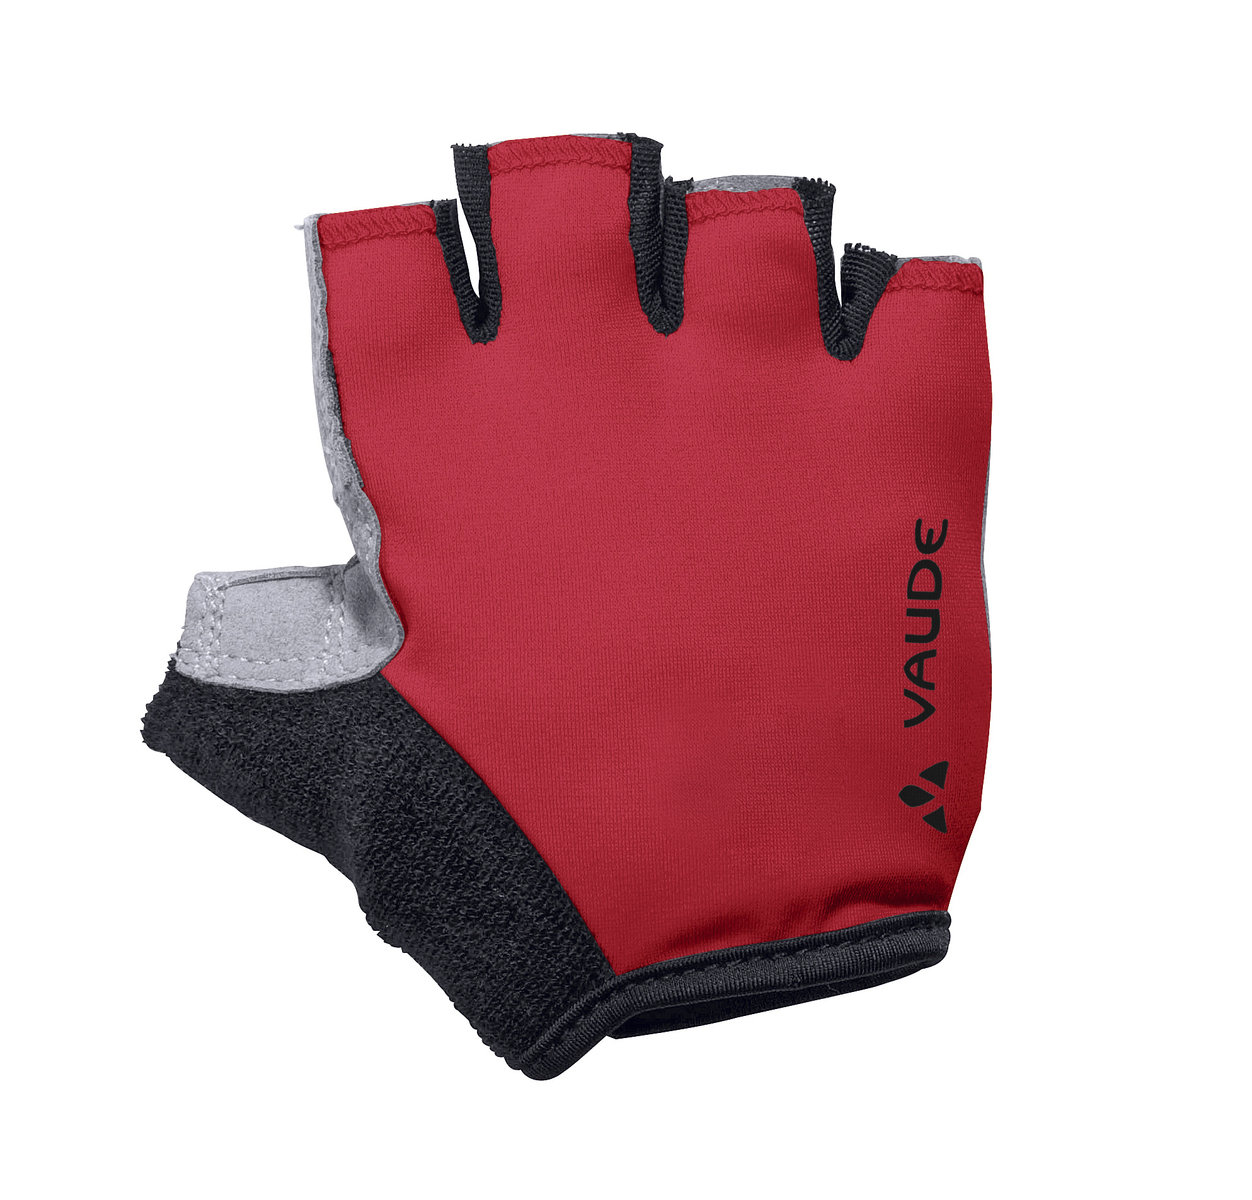 Kids Grody Gloves red Größe 5 - schneider-sports